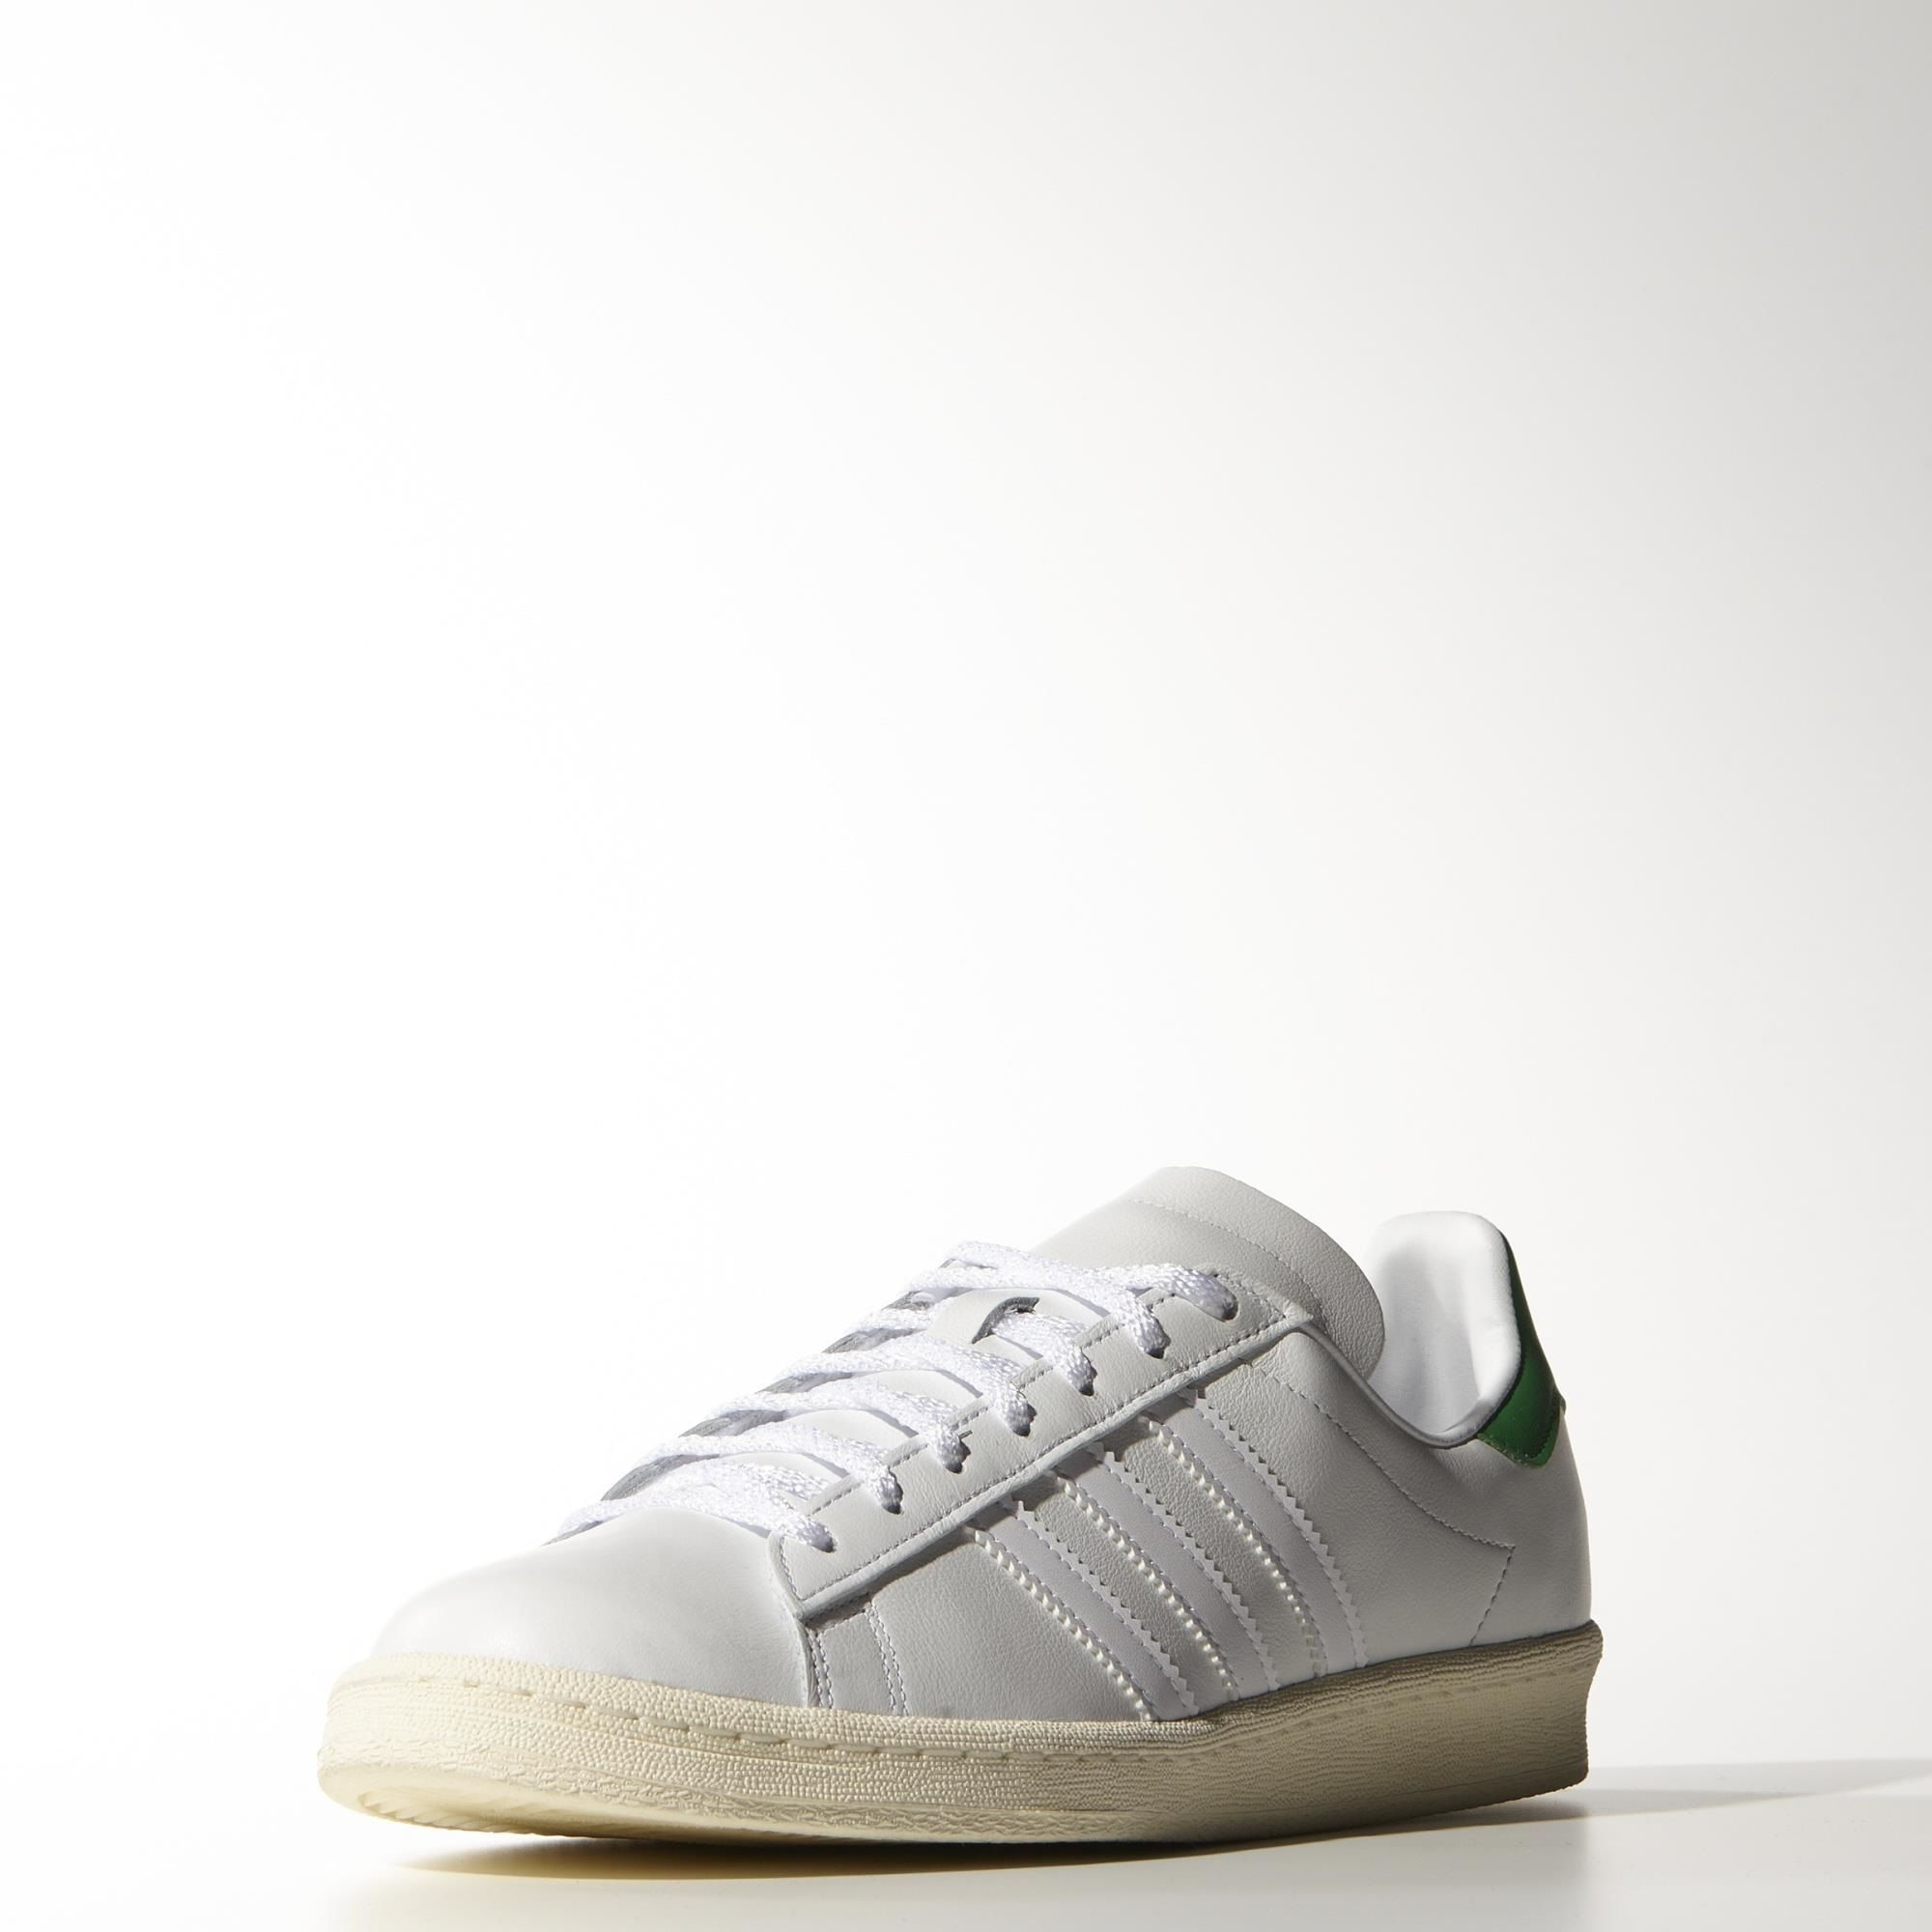 2ea492bd639536 adidas - Campus 80s Nigo Shoes Ftwr White   Green   Cream White B33821